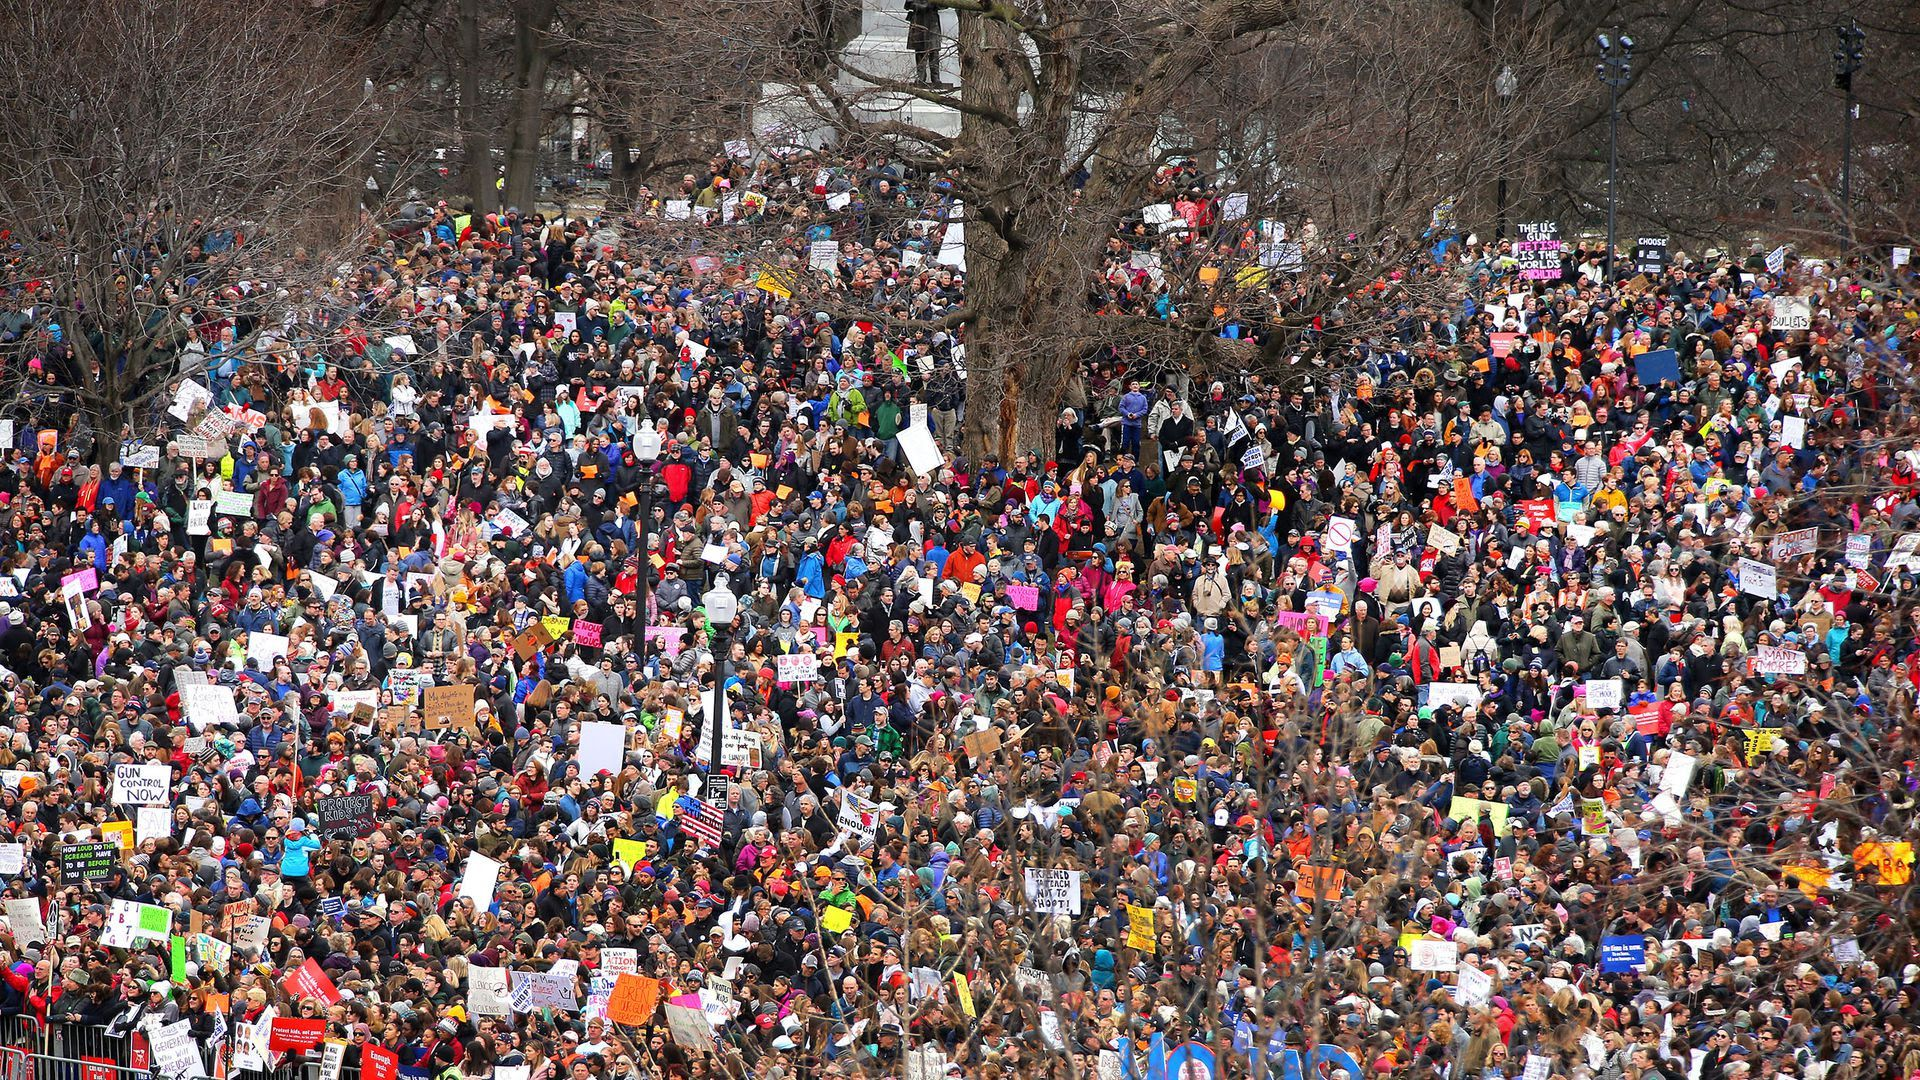 March For Our Lives at Boston Common on March 24 (John Tlumacki / Boston Globe via Getty Images)